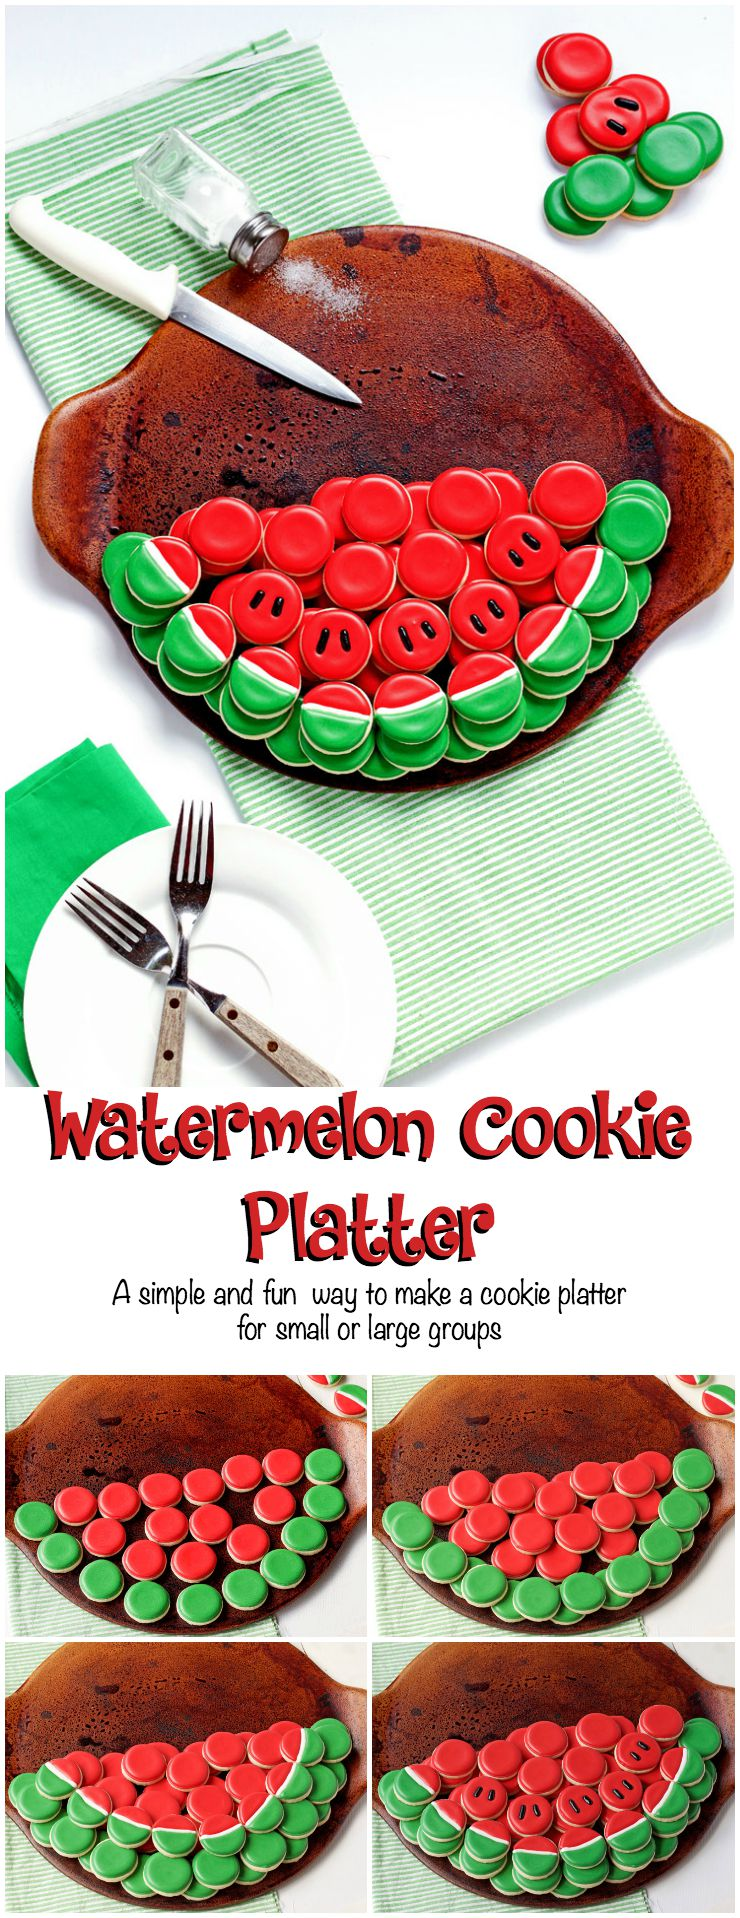 A Simple and Fun Watermelon Cookie Platter For a Small or Large Group by www.thebearfootbaker.com